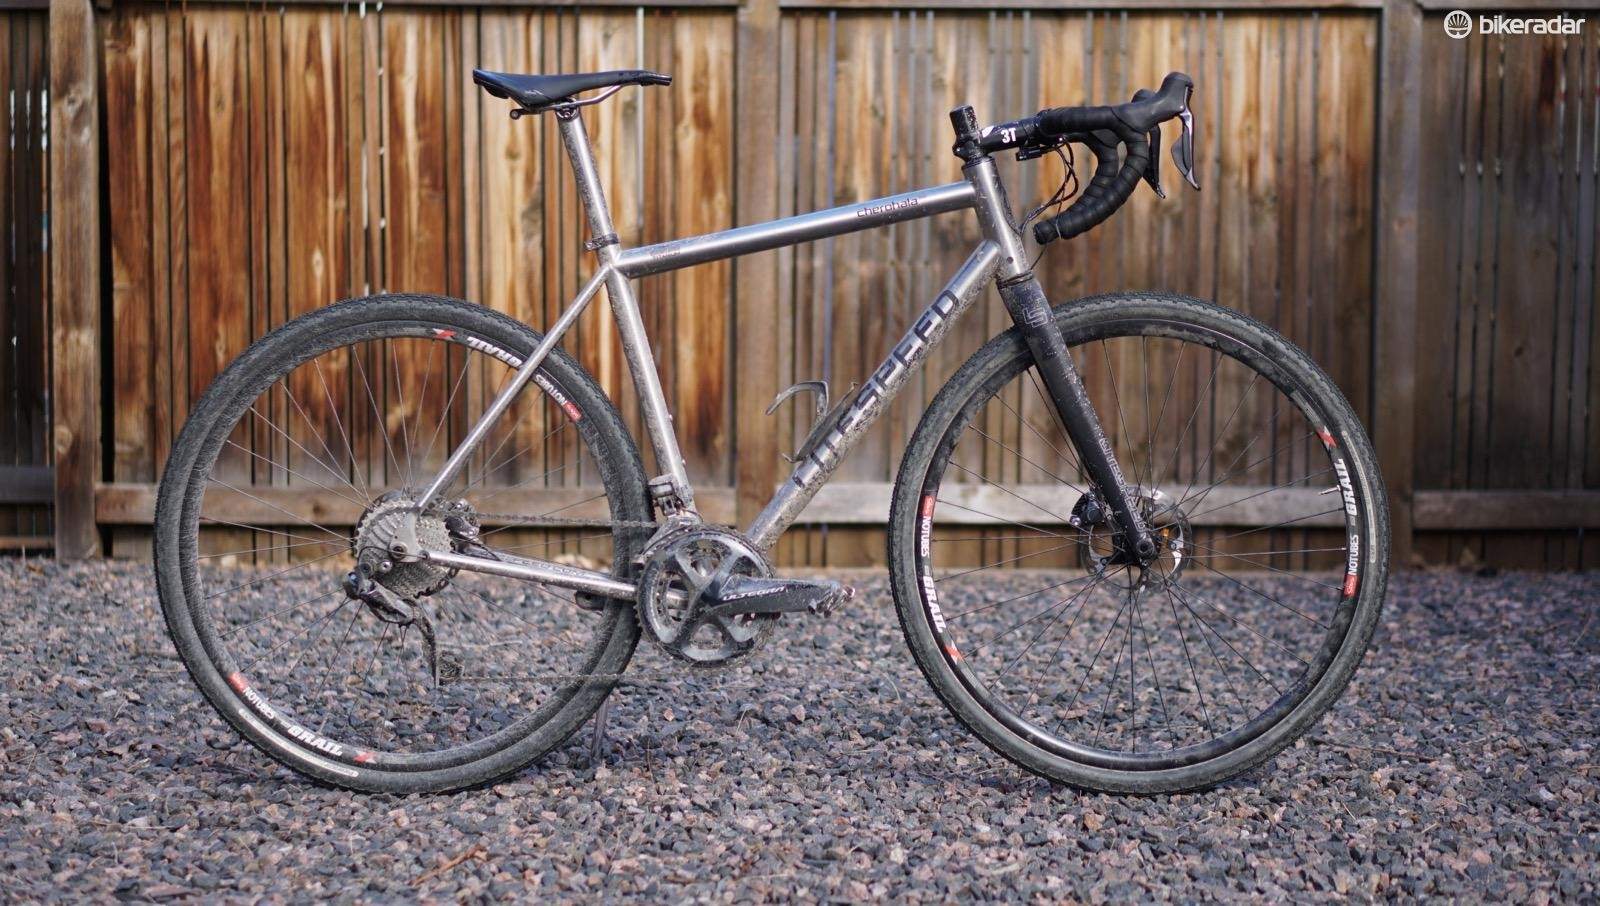 I also tested the bike quite a bit with Stan's Grail wheels and Panaracer 40mm GravelKing tubeless tires